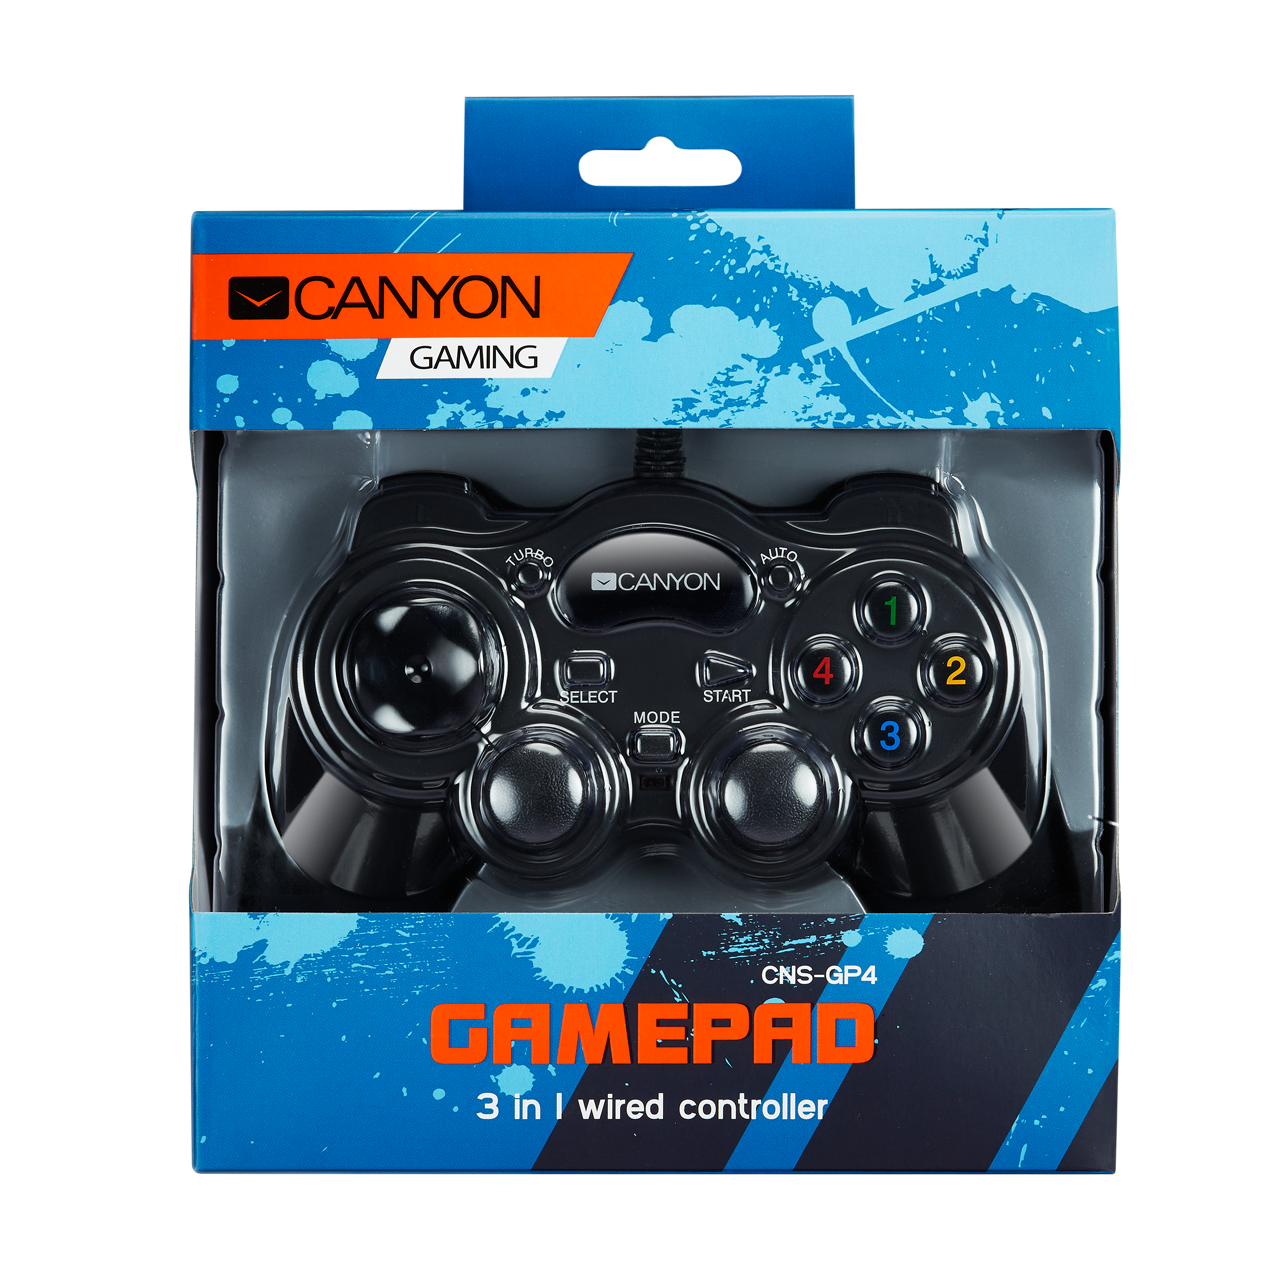 3 in 1 Wired Gamepad (CNS-GP4) - Canyon